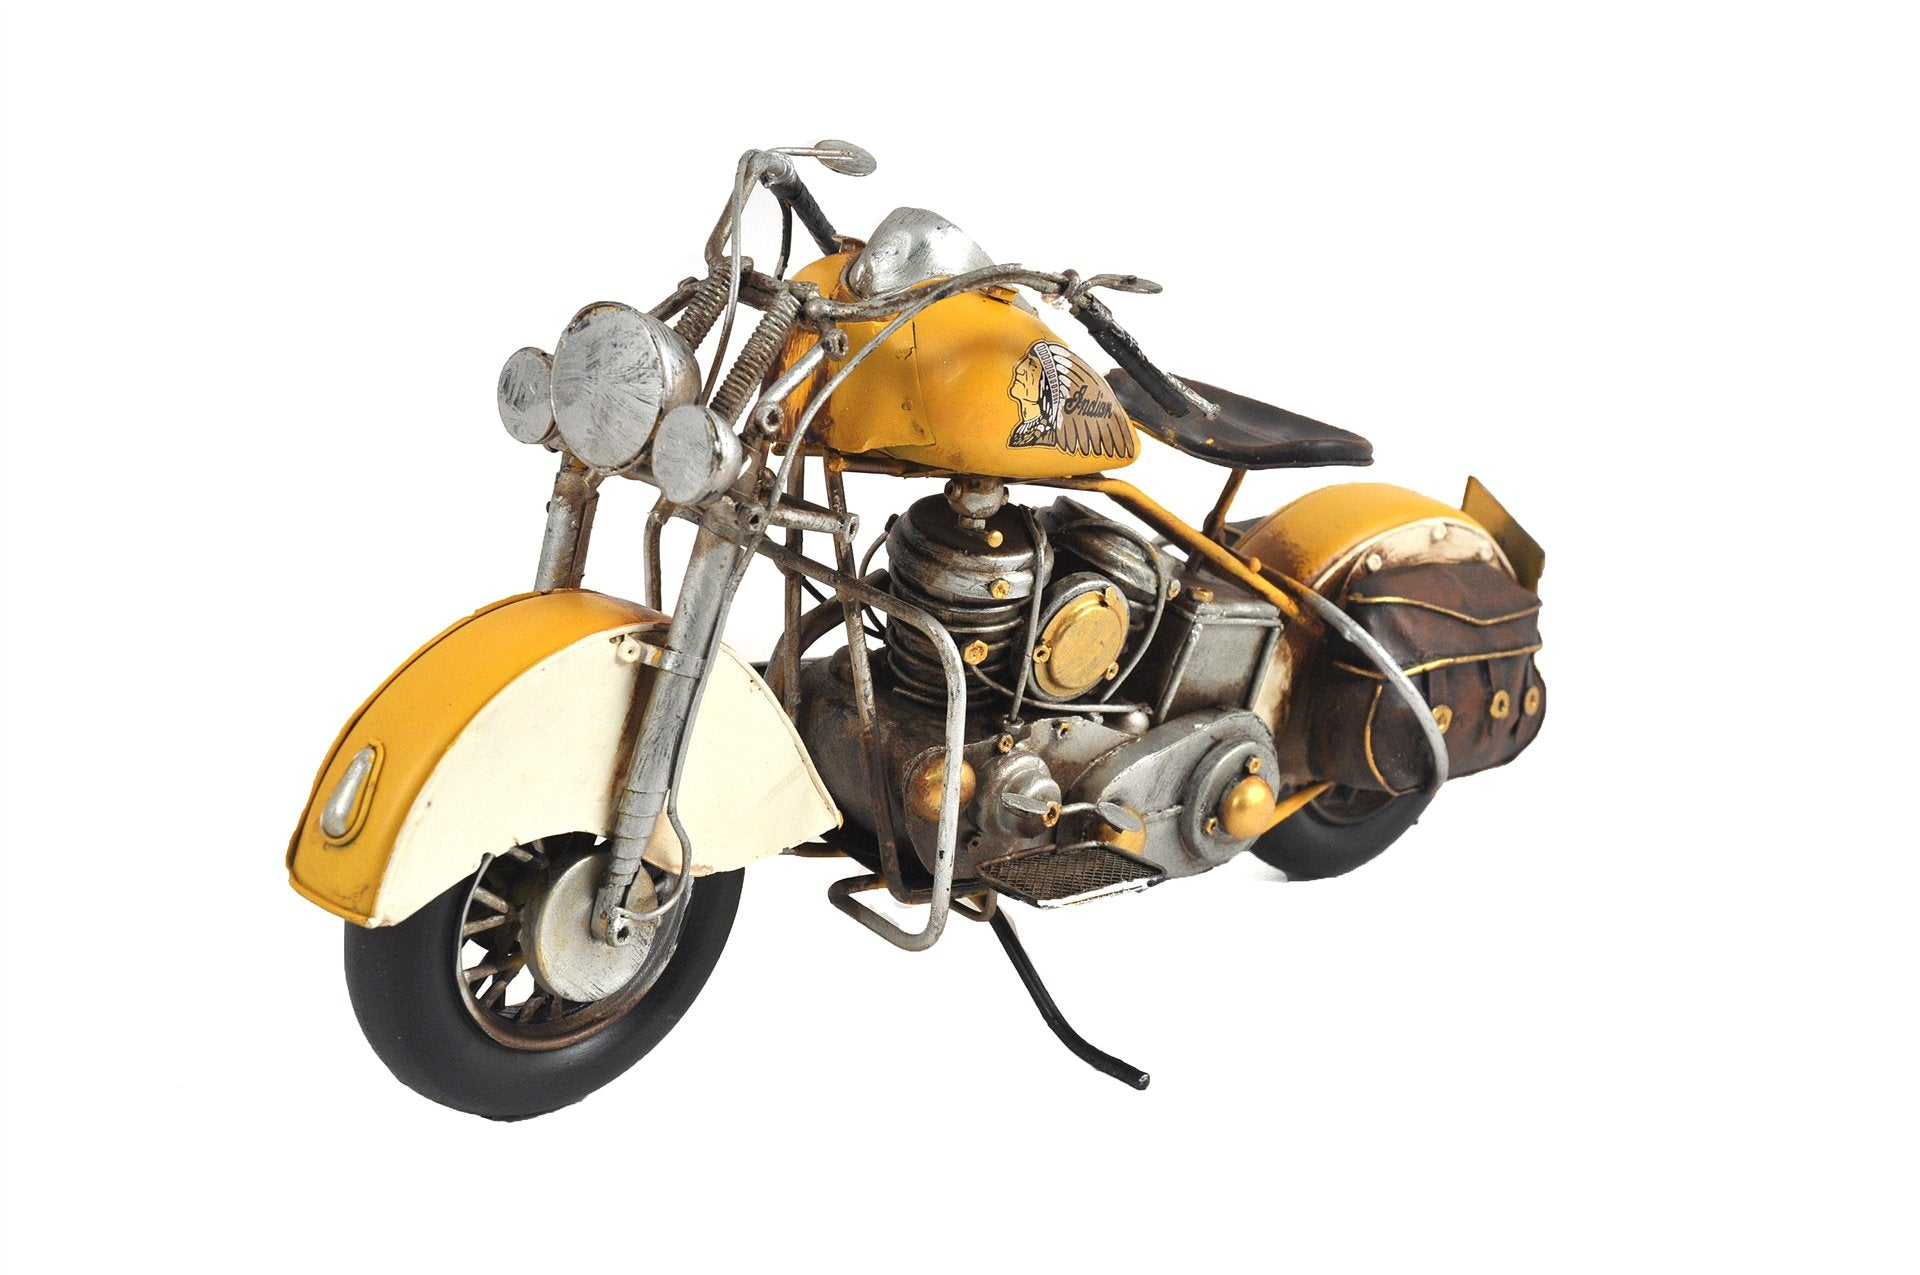 MINIATURE YELLOW MOTORCYCLE